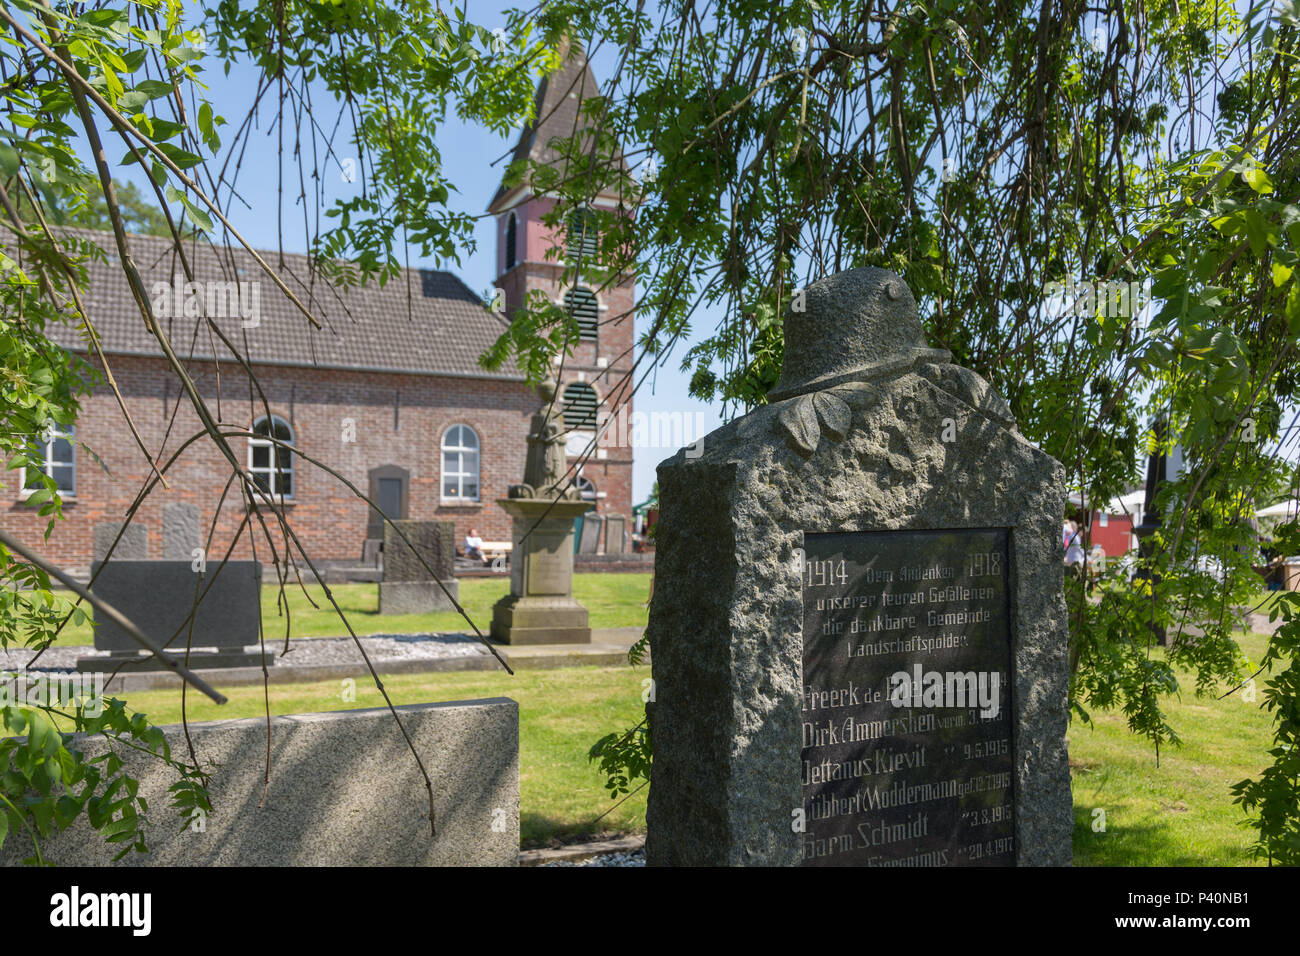 Memorial stone for the fallen of the 1st World War in front of the church Landschaftspolder, Bunde, Rheiderland, Ostfriesland, Germany. - Stock Image